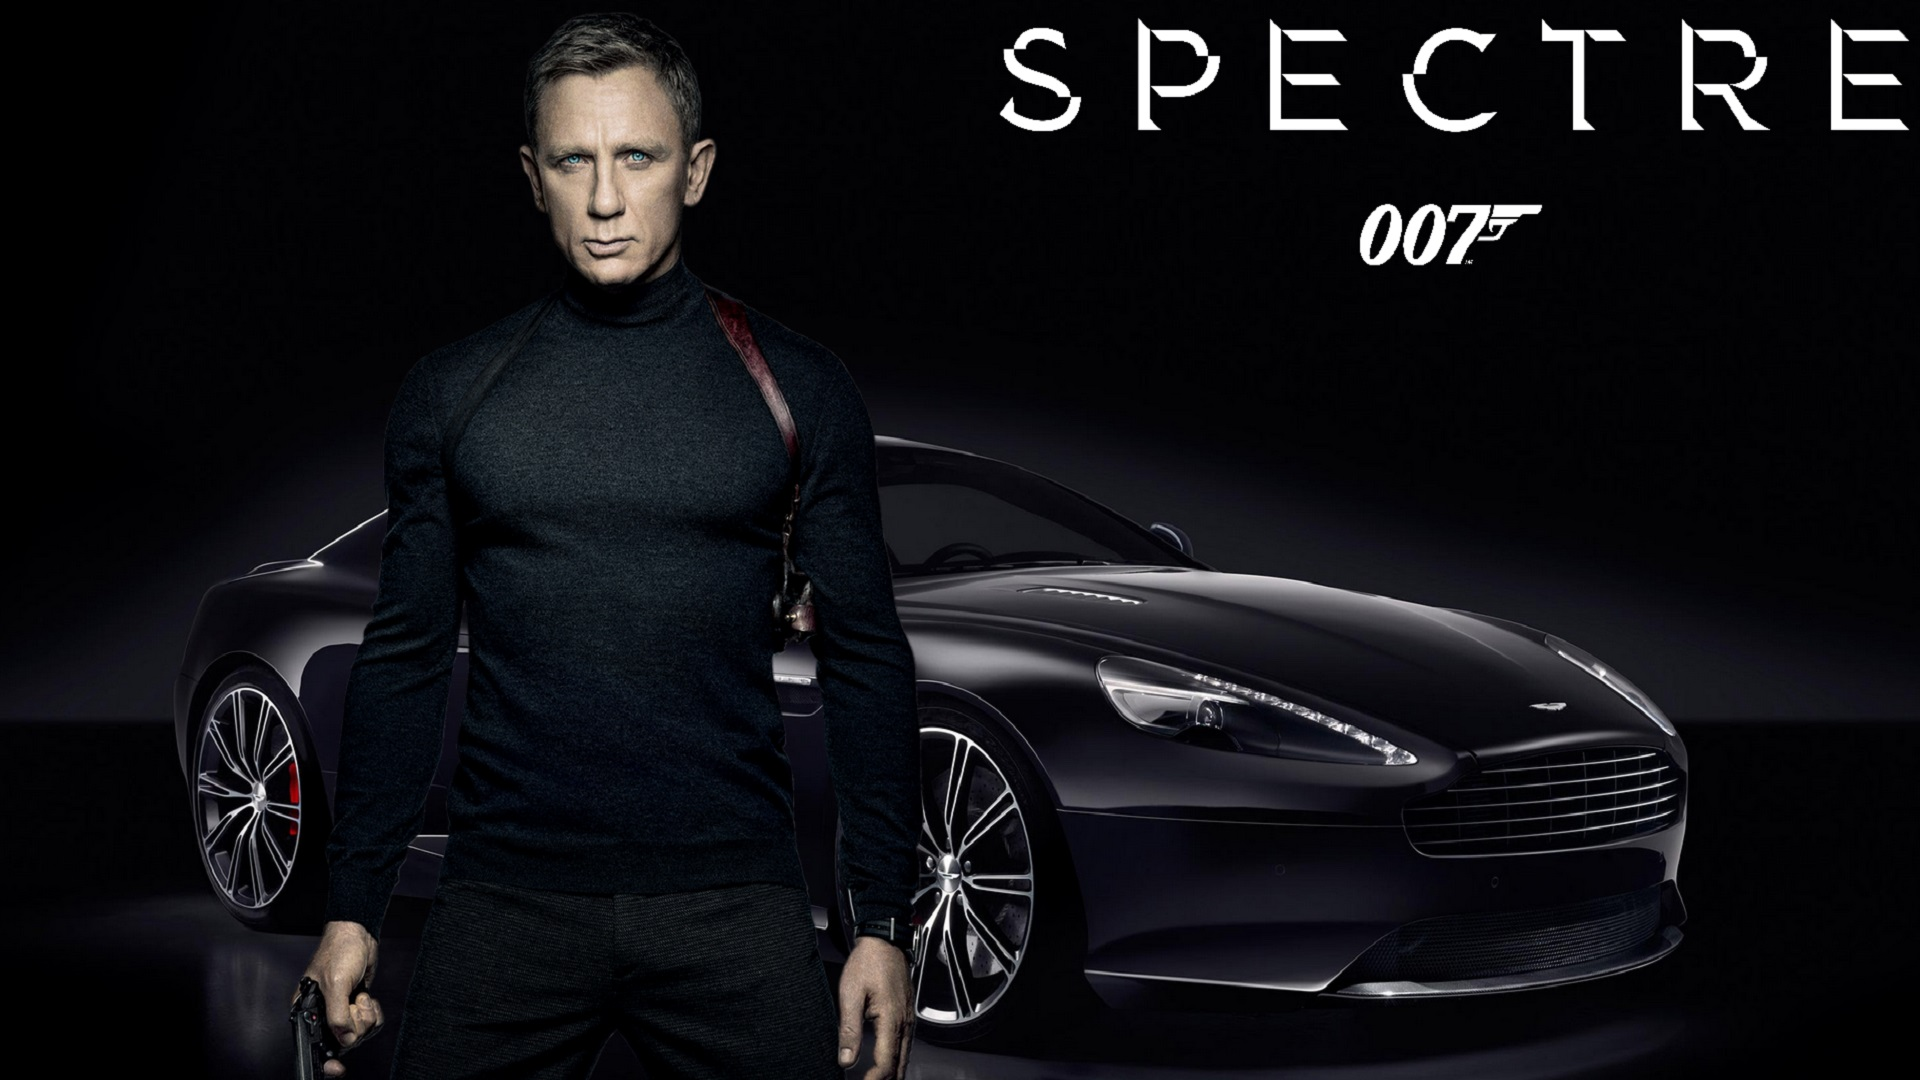 Spectre 007 movies HD Wallpapers download 1920x1080